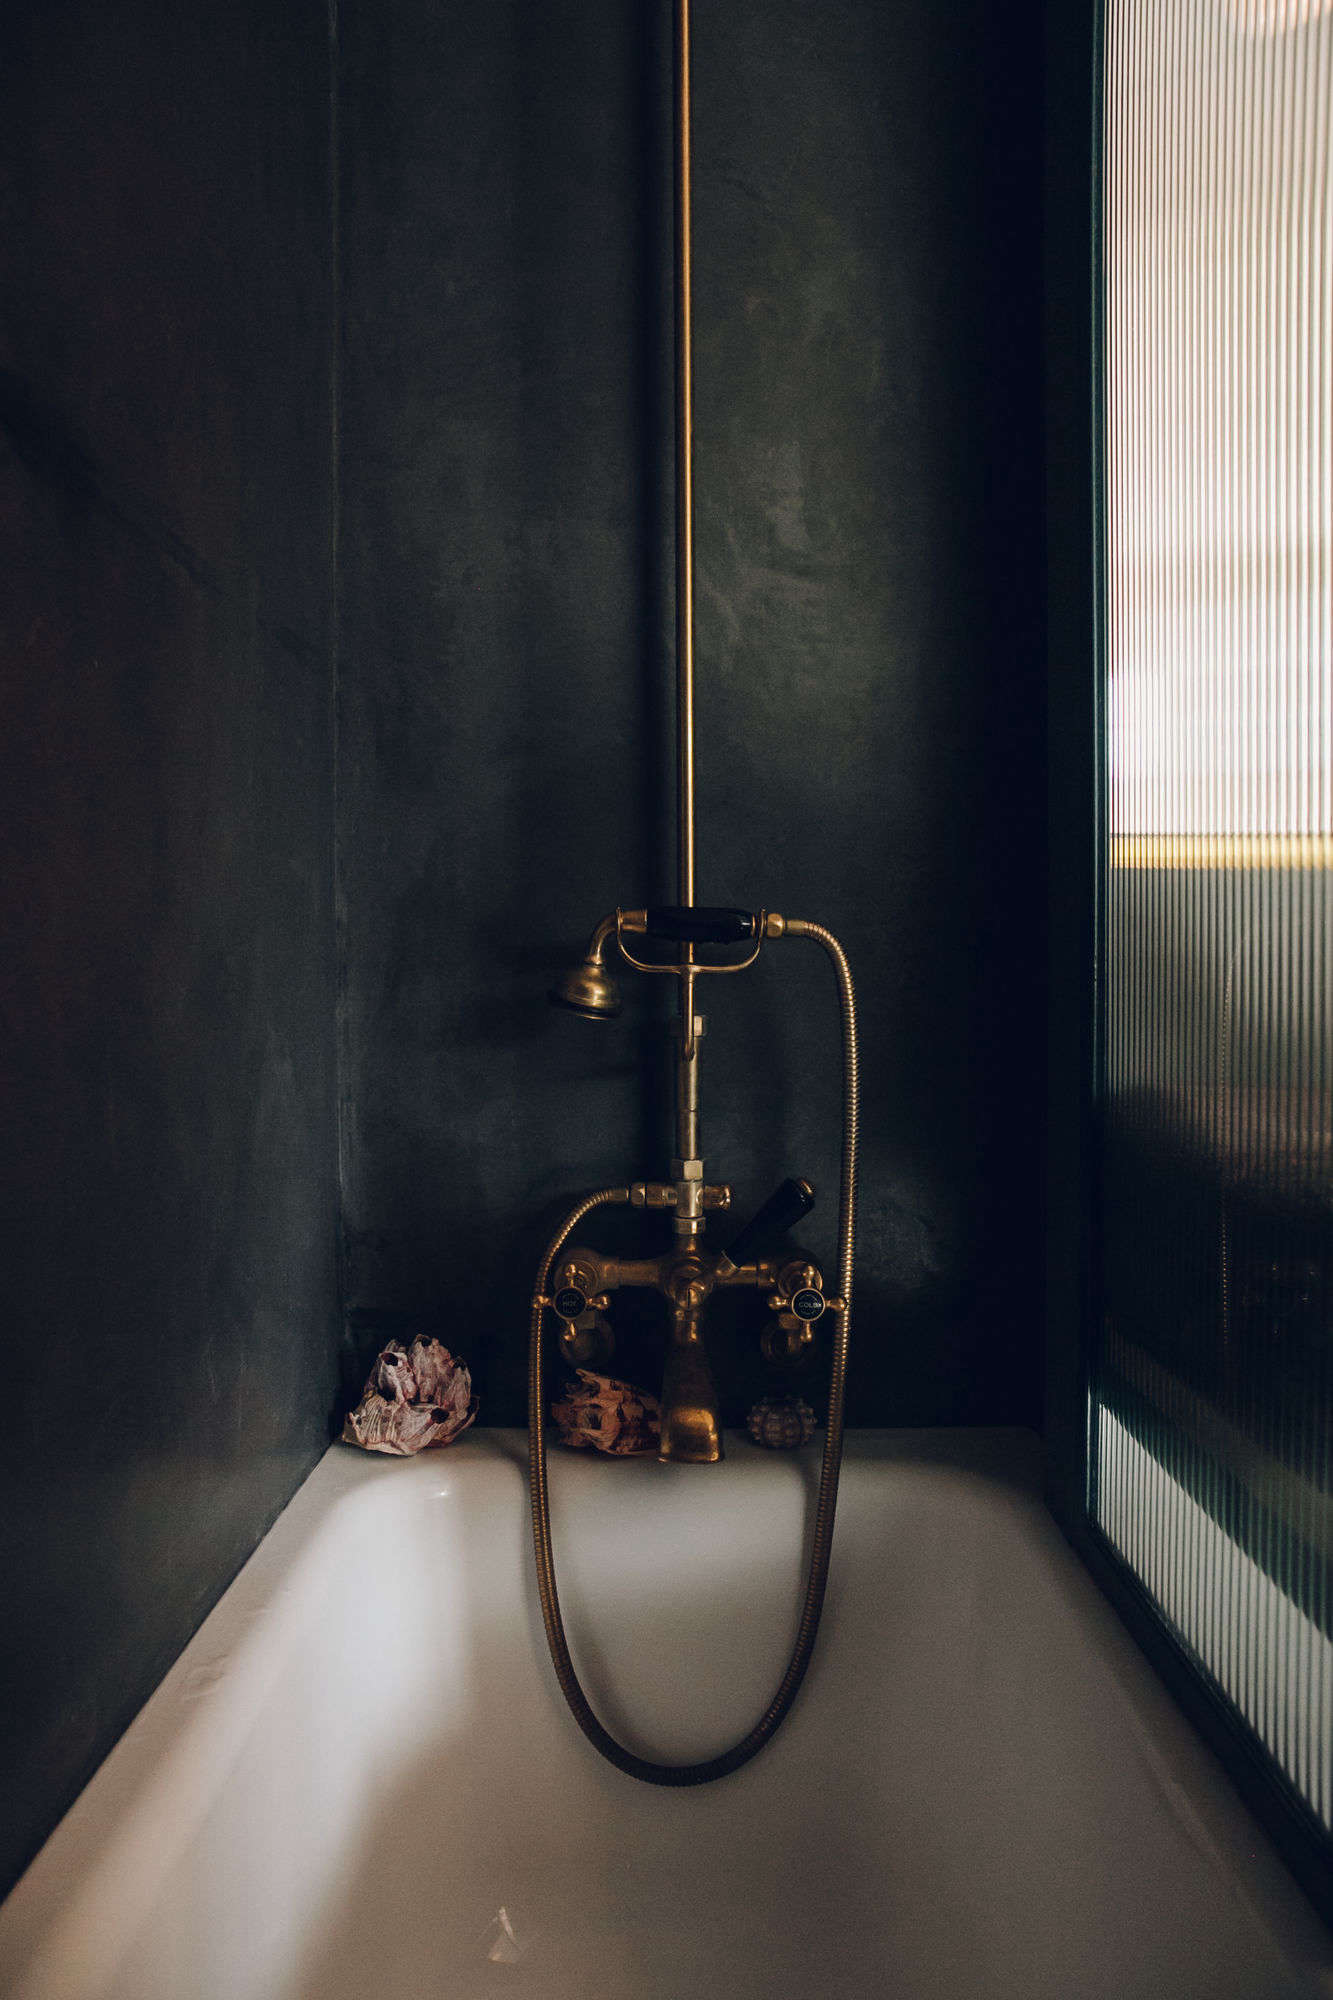 The shower tub fillermatches the sink's faucet, alsofromBarber Wilsons & Co.